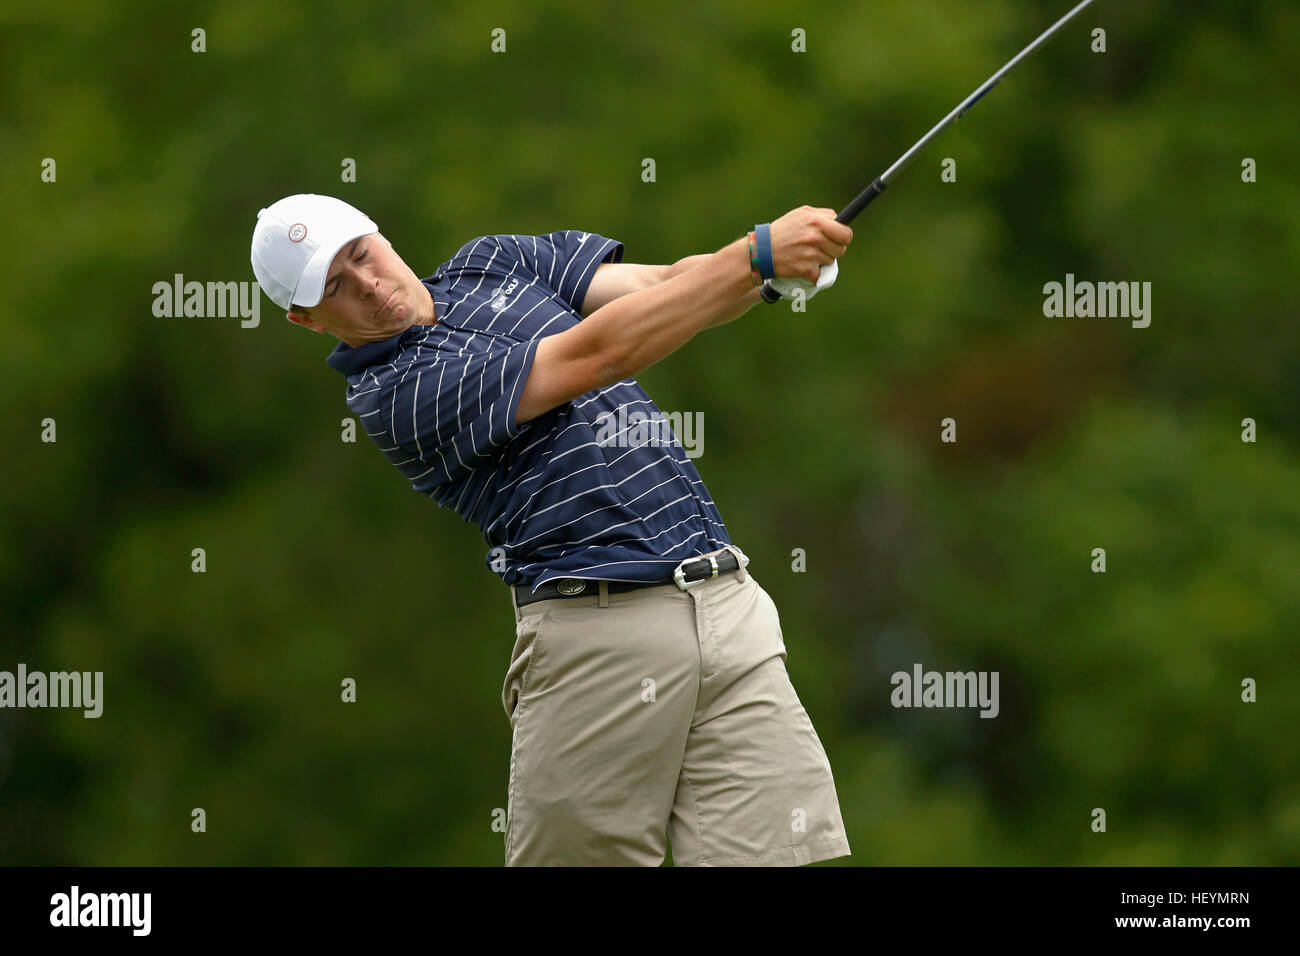 Jordan Spieth plays for Dallas Jesuit in the 2011 UIL Texas State 5A Division Golf Championship in Austin, Texas. Stock Photo